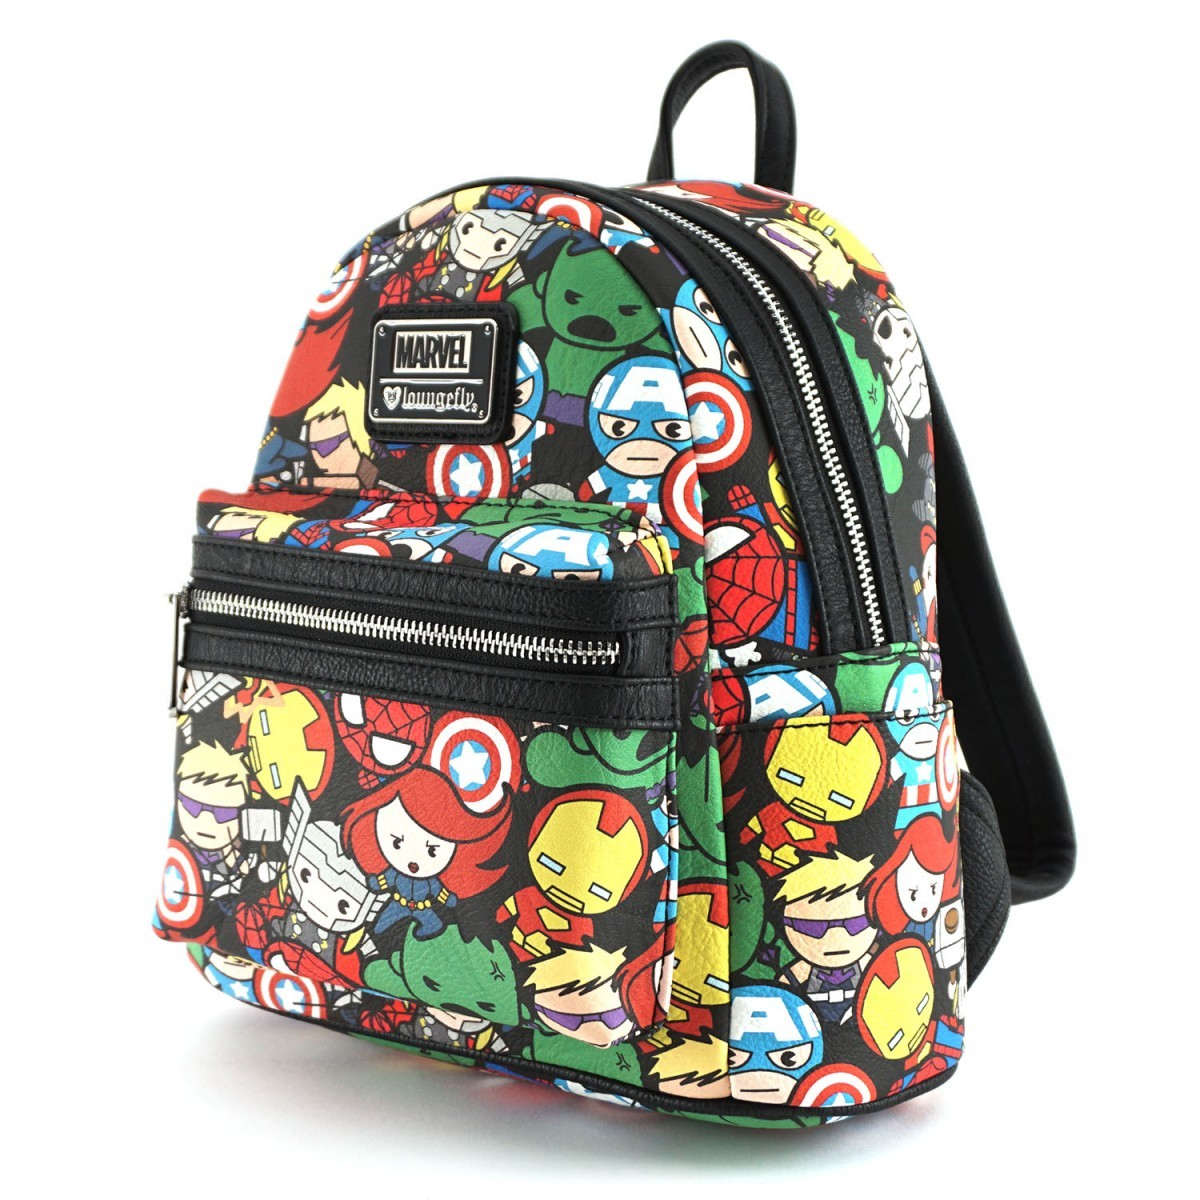 ... Loungefly Marvel Avengers Kawaii Print Mini Backpack image d453d18d48242